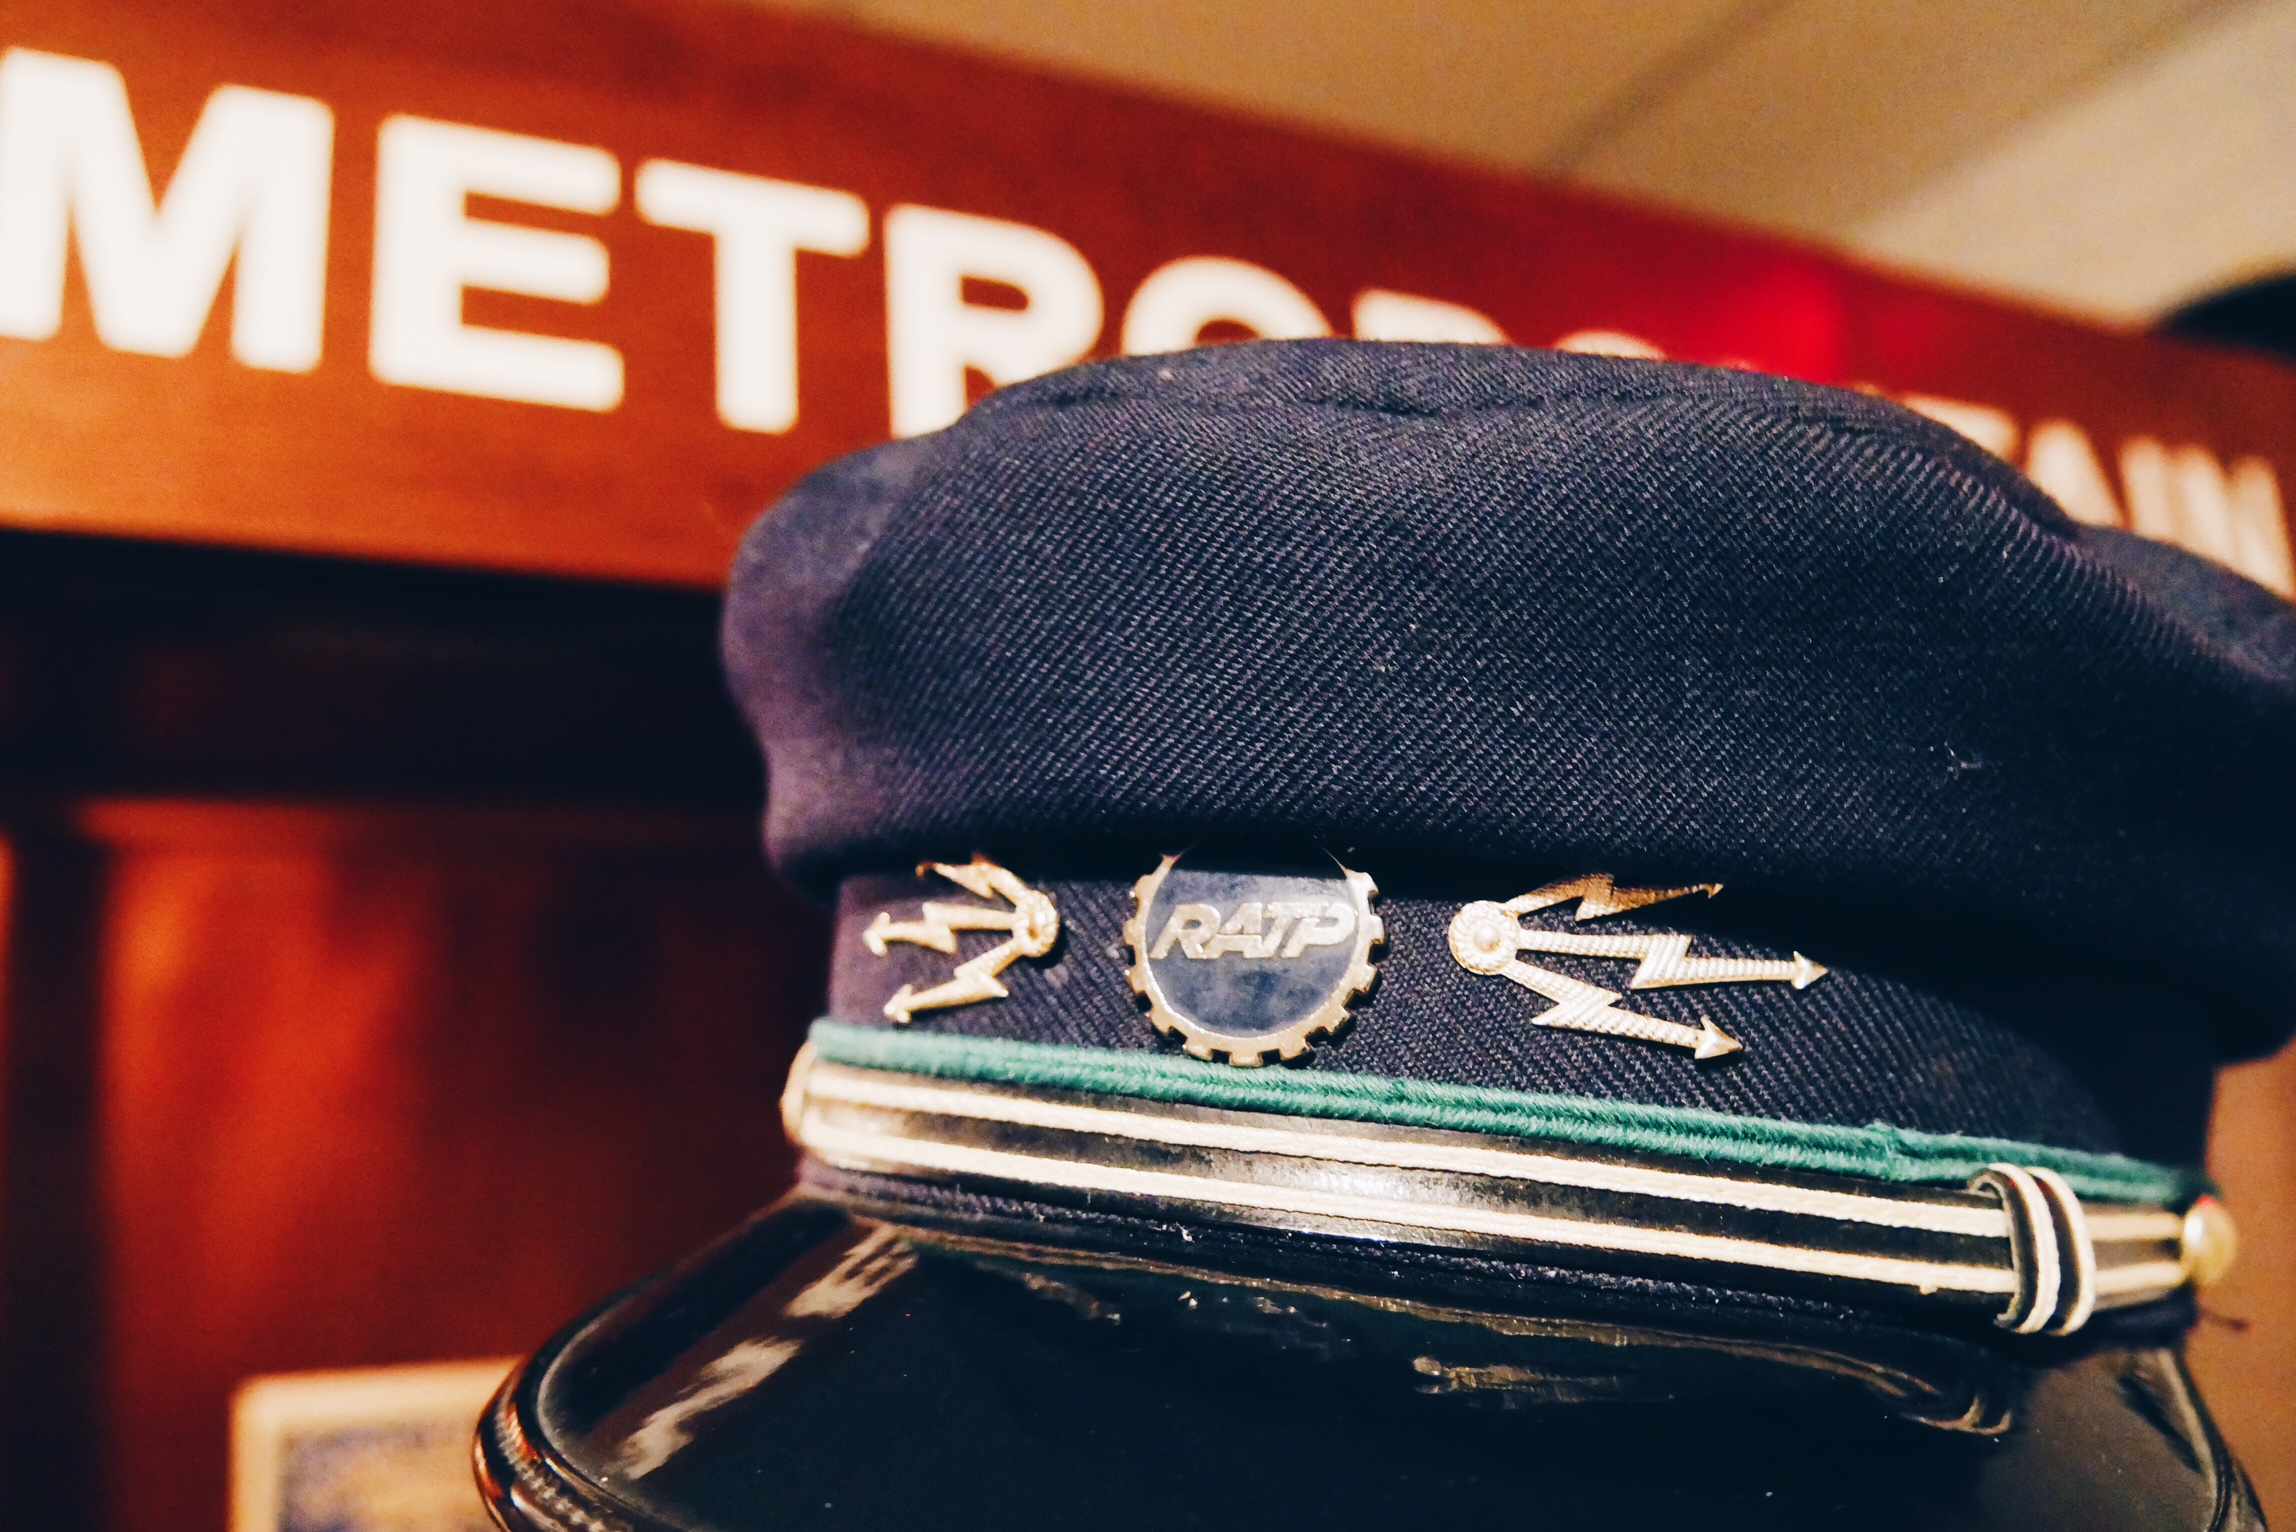 Poursuite-dans-le-métropolitan-aventure-Escape-Hunt-Paris-live-Escape-Game-casquette-RATP-vintage-photo-usofparis-blog